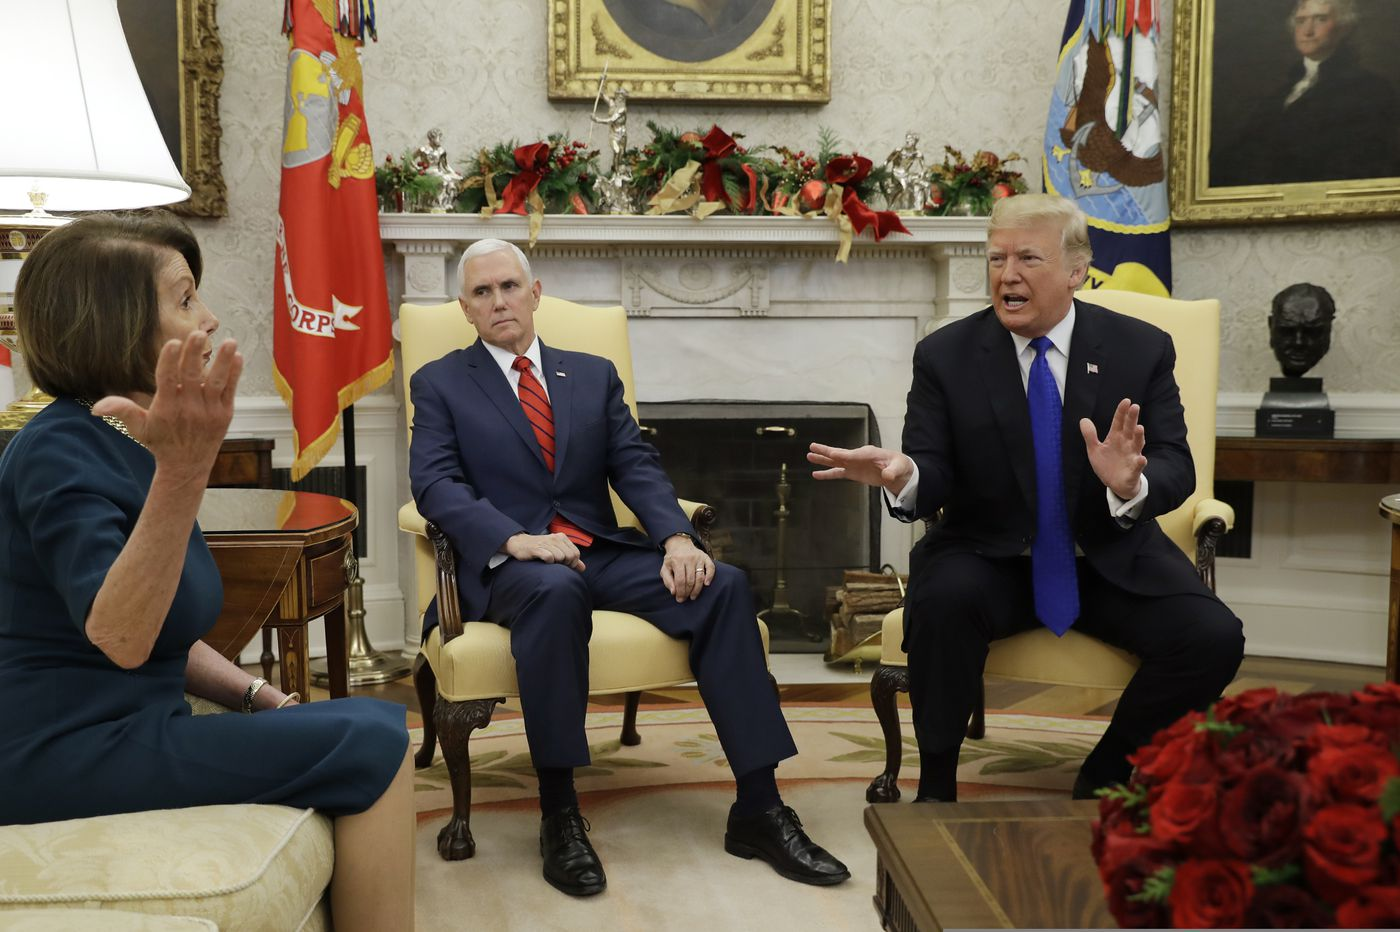 Trump Fights With Pelosi And Schumer At White House Over